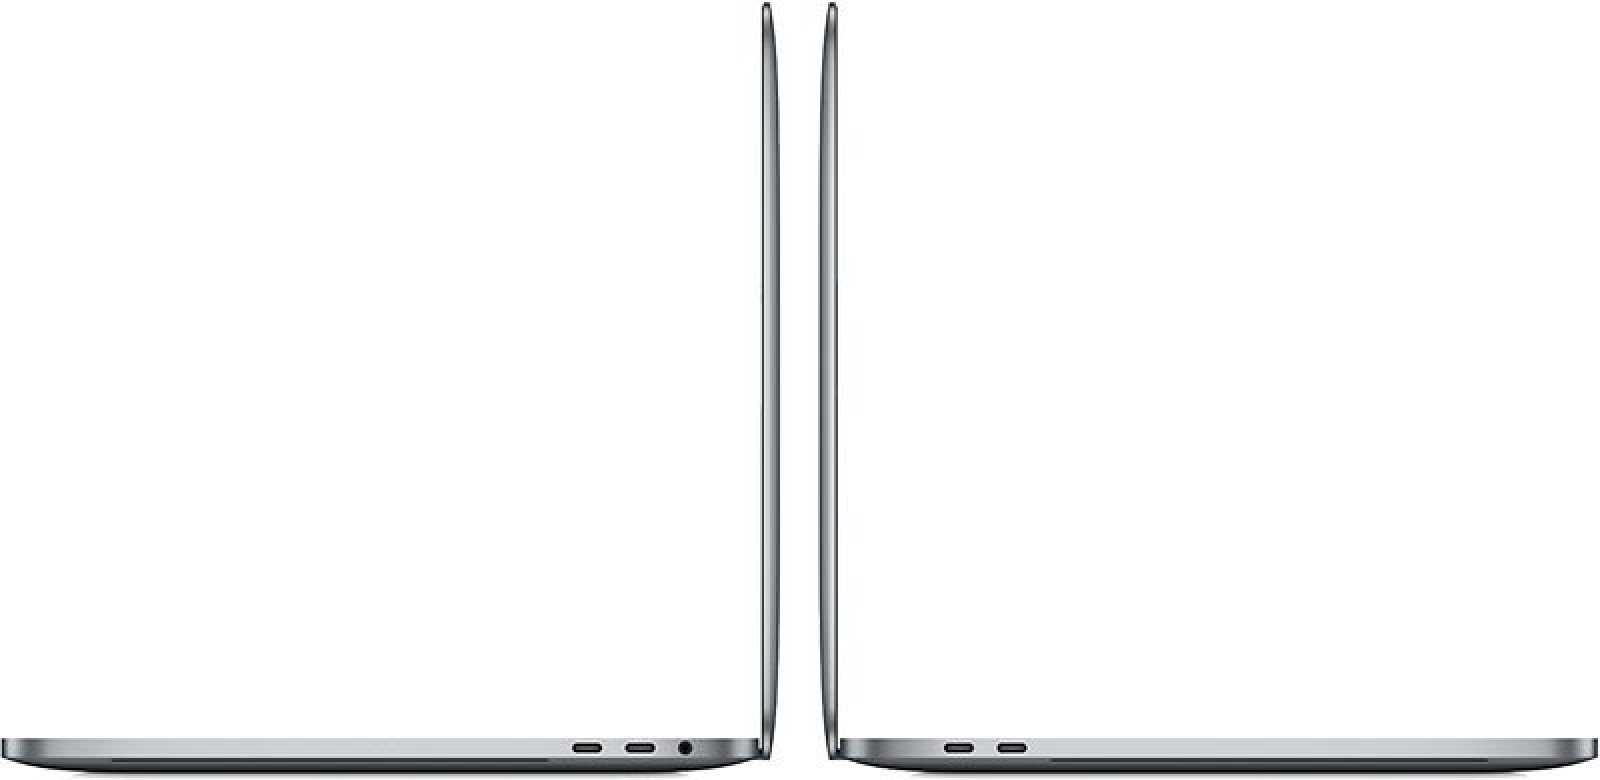 2018 13-Inch MacBook Pro with Touch Bar has Four Full-Speed Thunderbolt 3 Ports